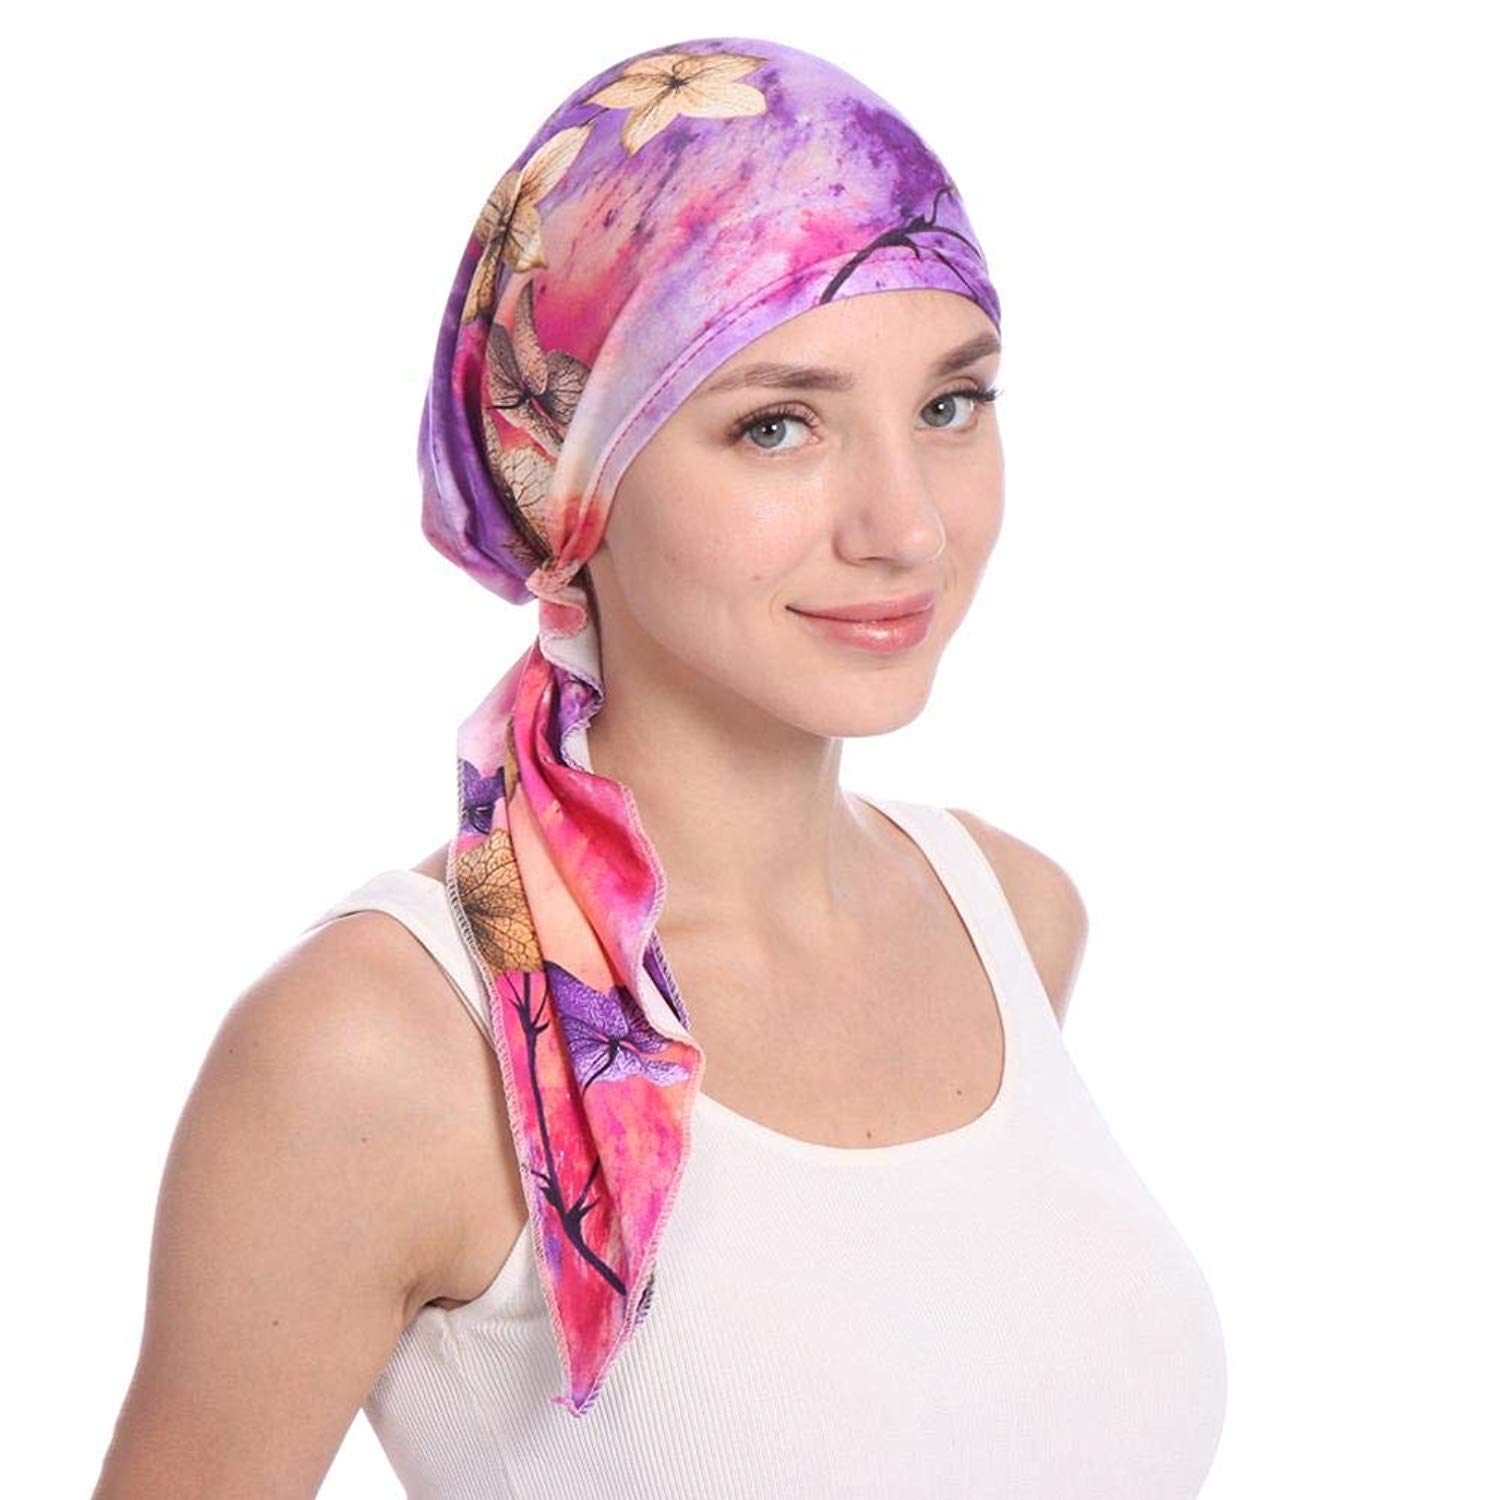 0be1746d80933 Women Head Scarf Cap Elegant Headscarf Cap Chemotherapy Beanie Cap Sleeping  Cap For Cancer Chemo Alopecia